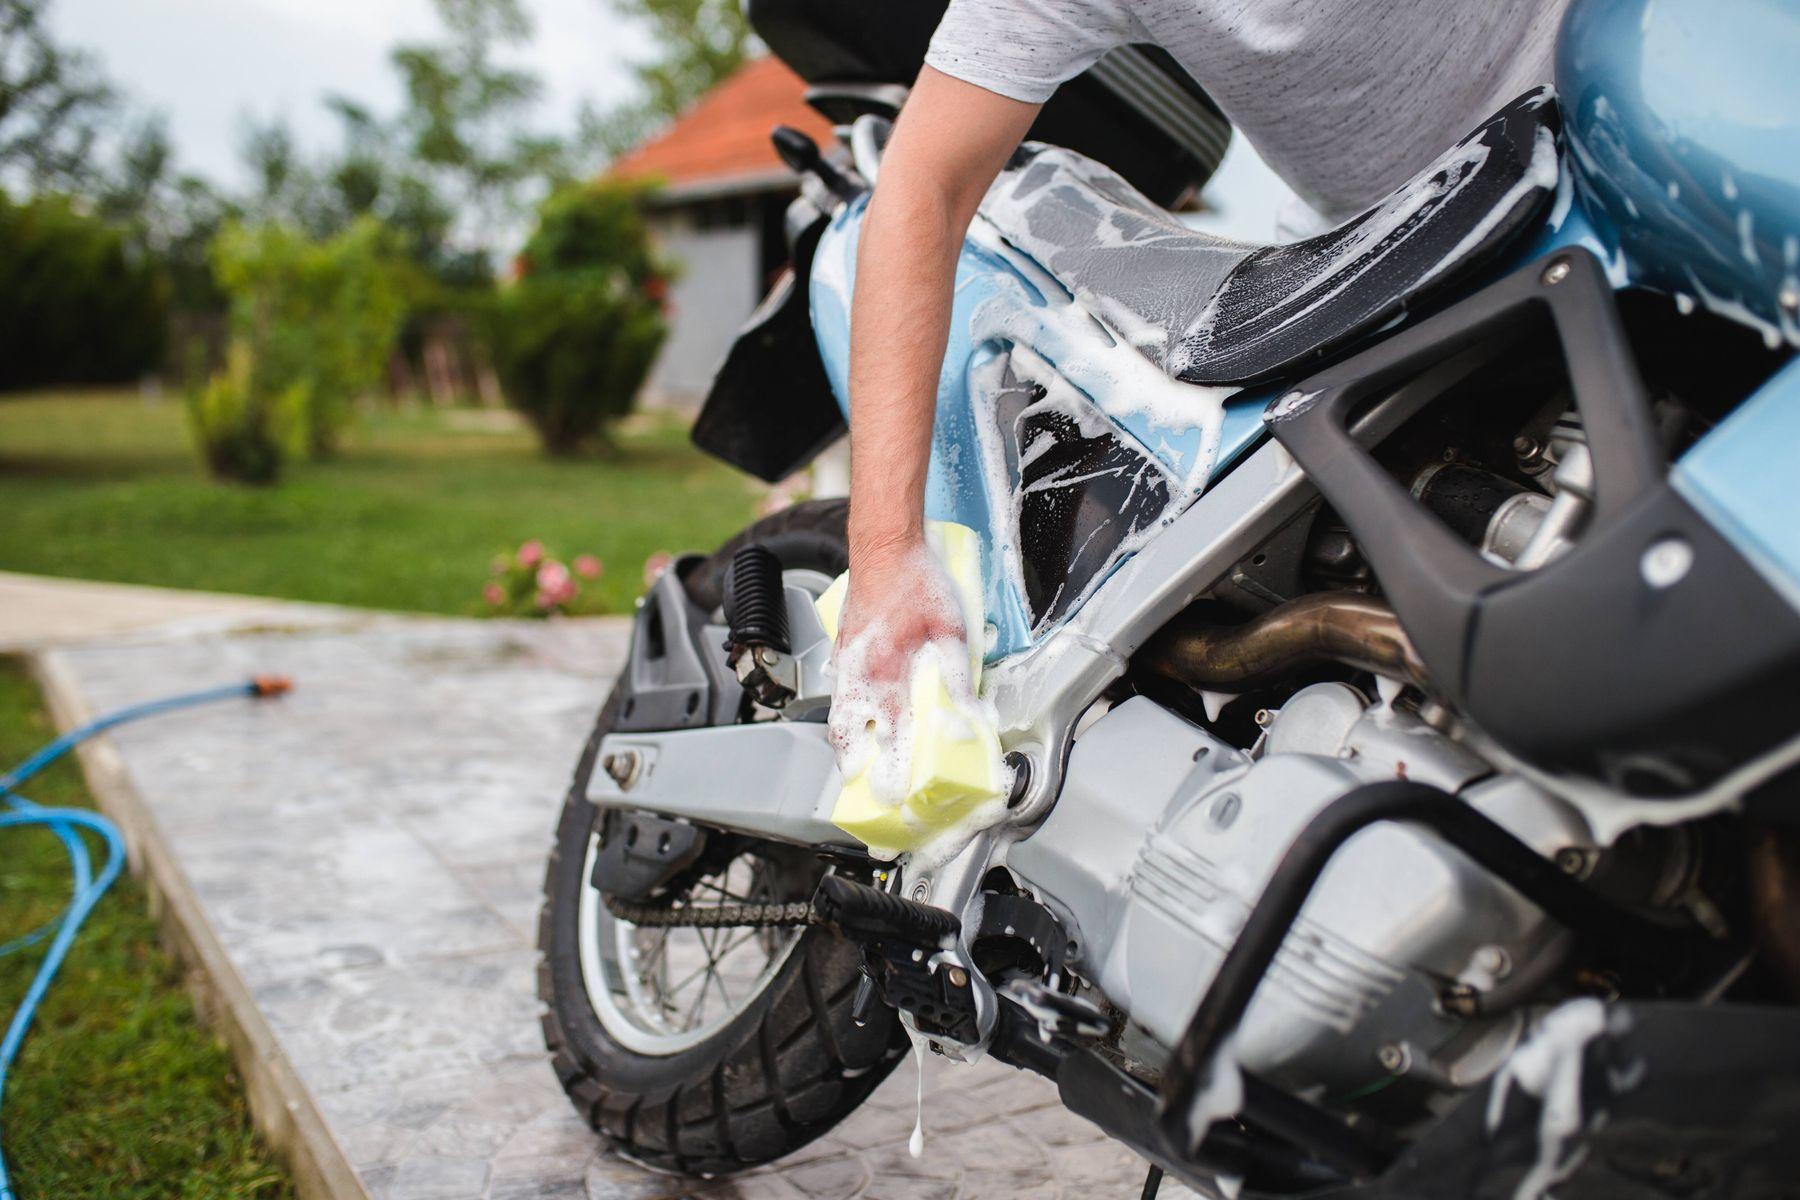 How to Wash Your Motorcycle | Cleanipedia